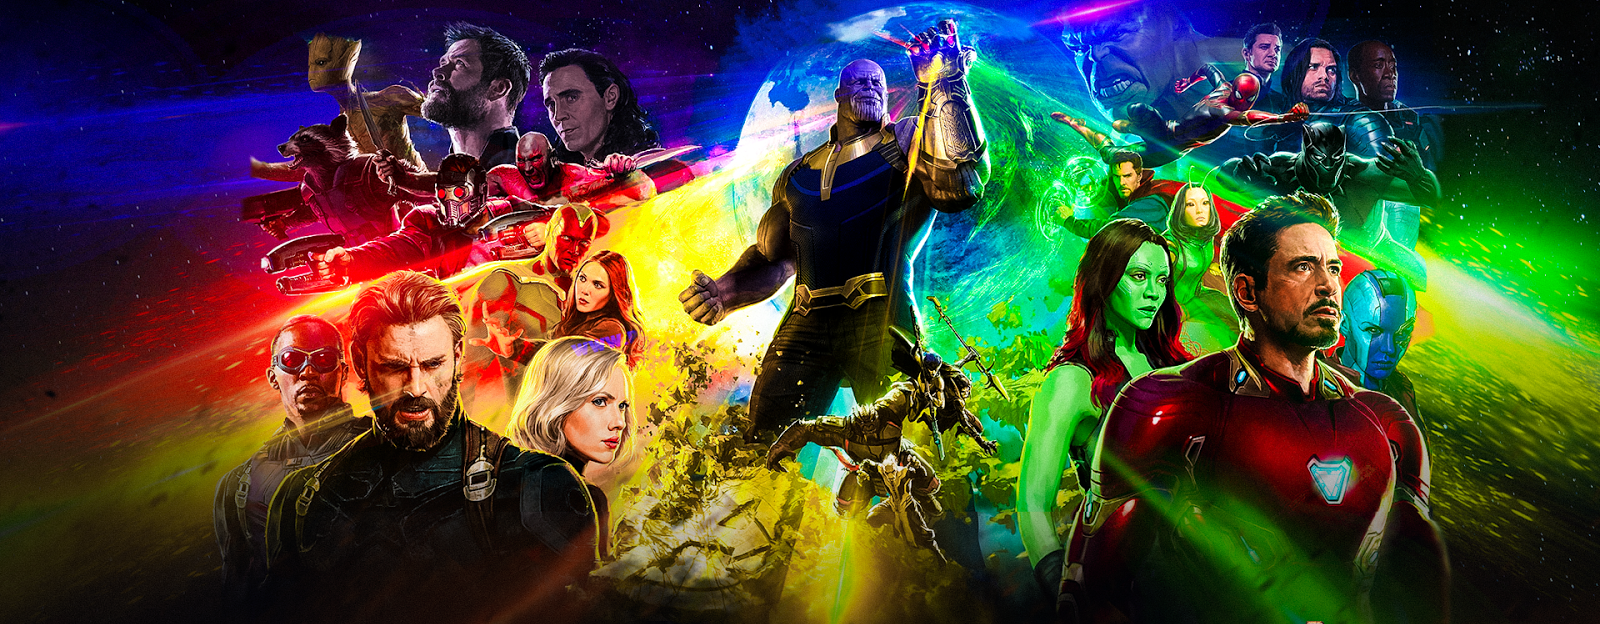 how to watch avengers infinity wars online hd